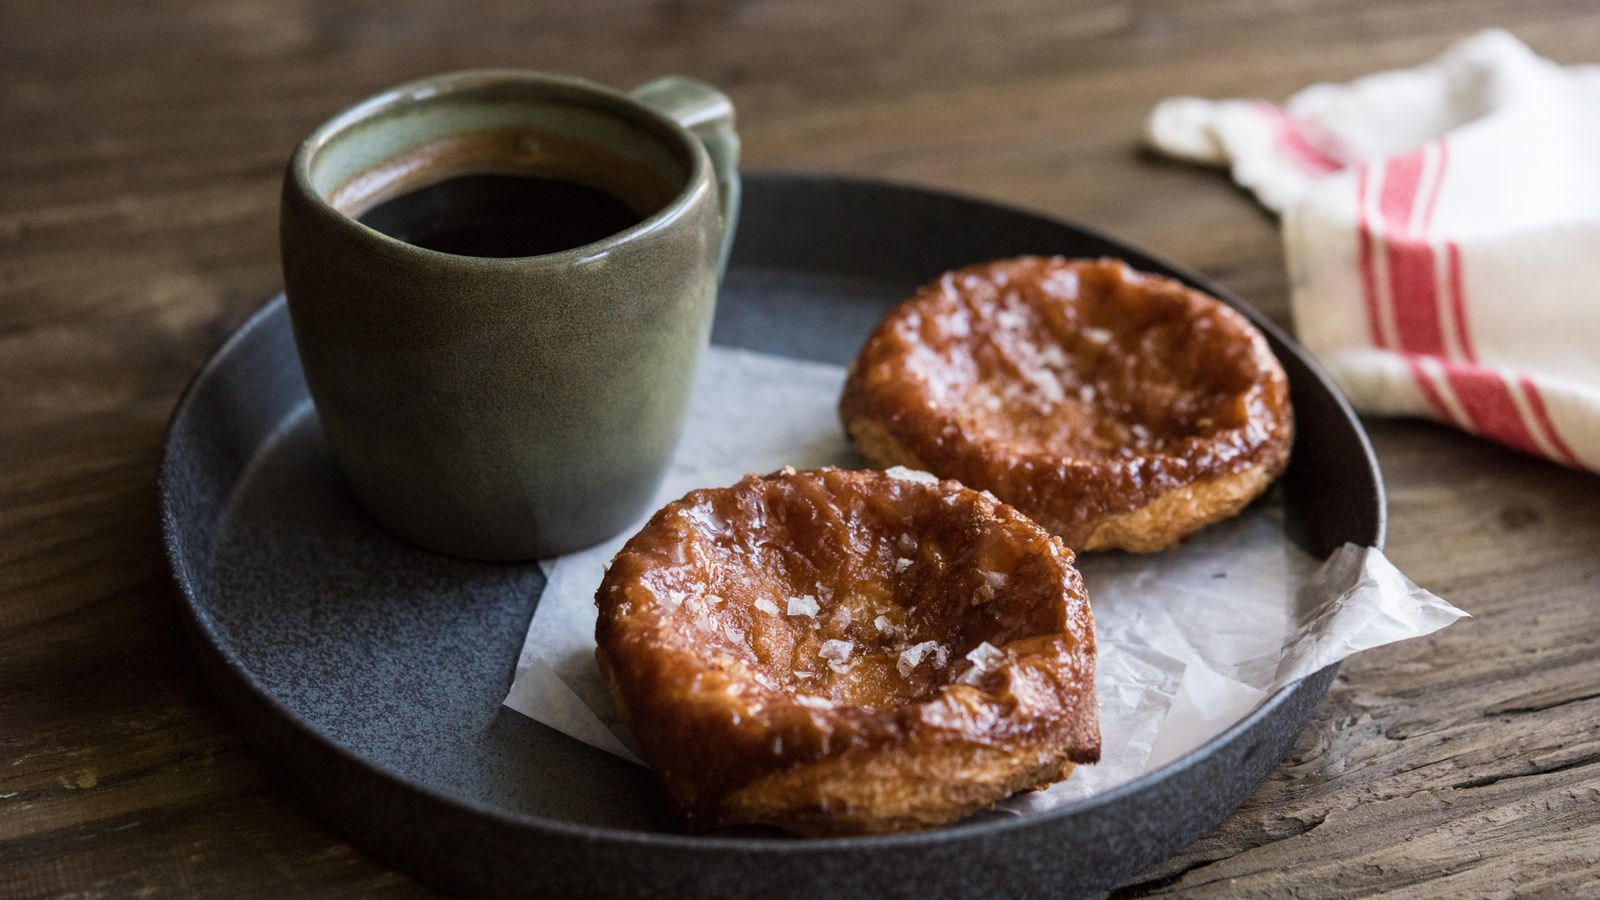 Meet the Kouign Amann: The Obscure French Pastry Making it Big in America #kouignamannrecette